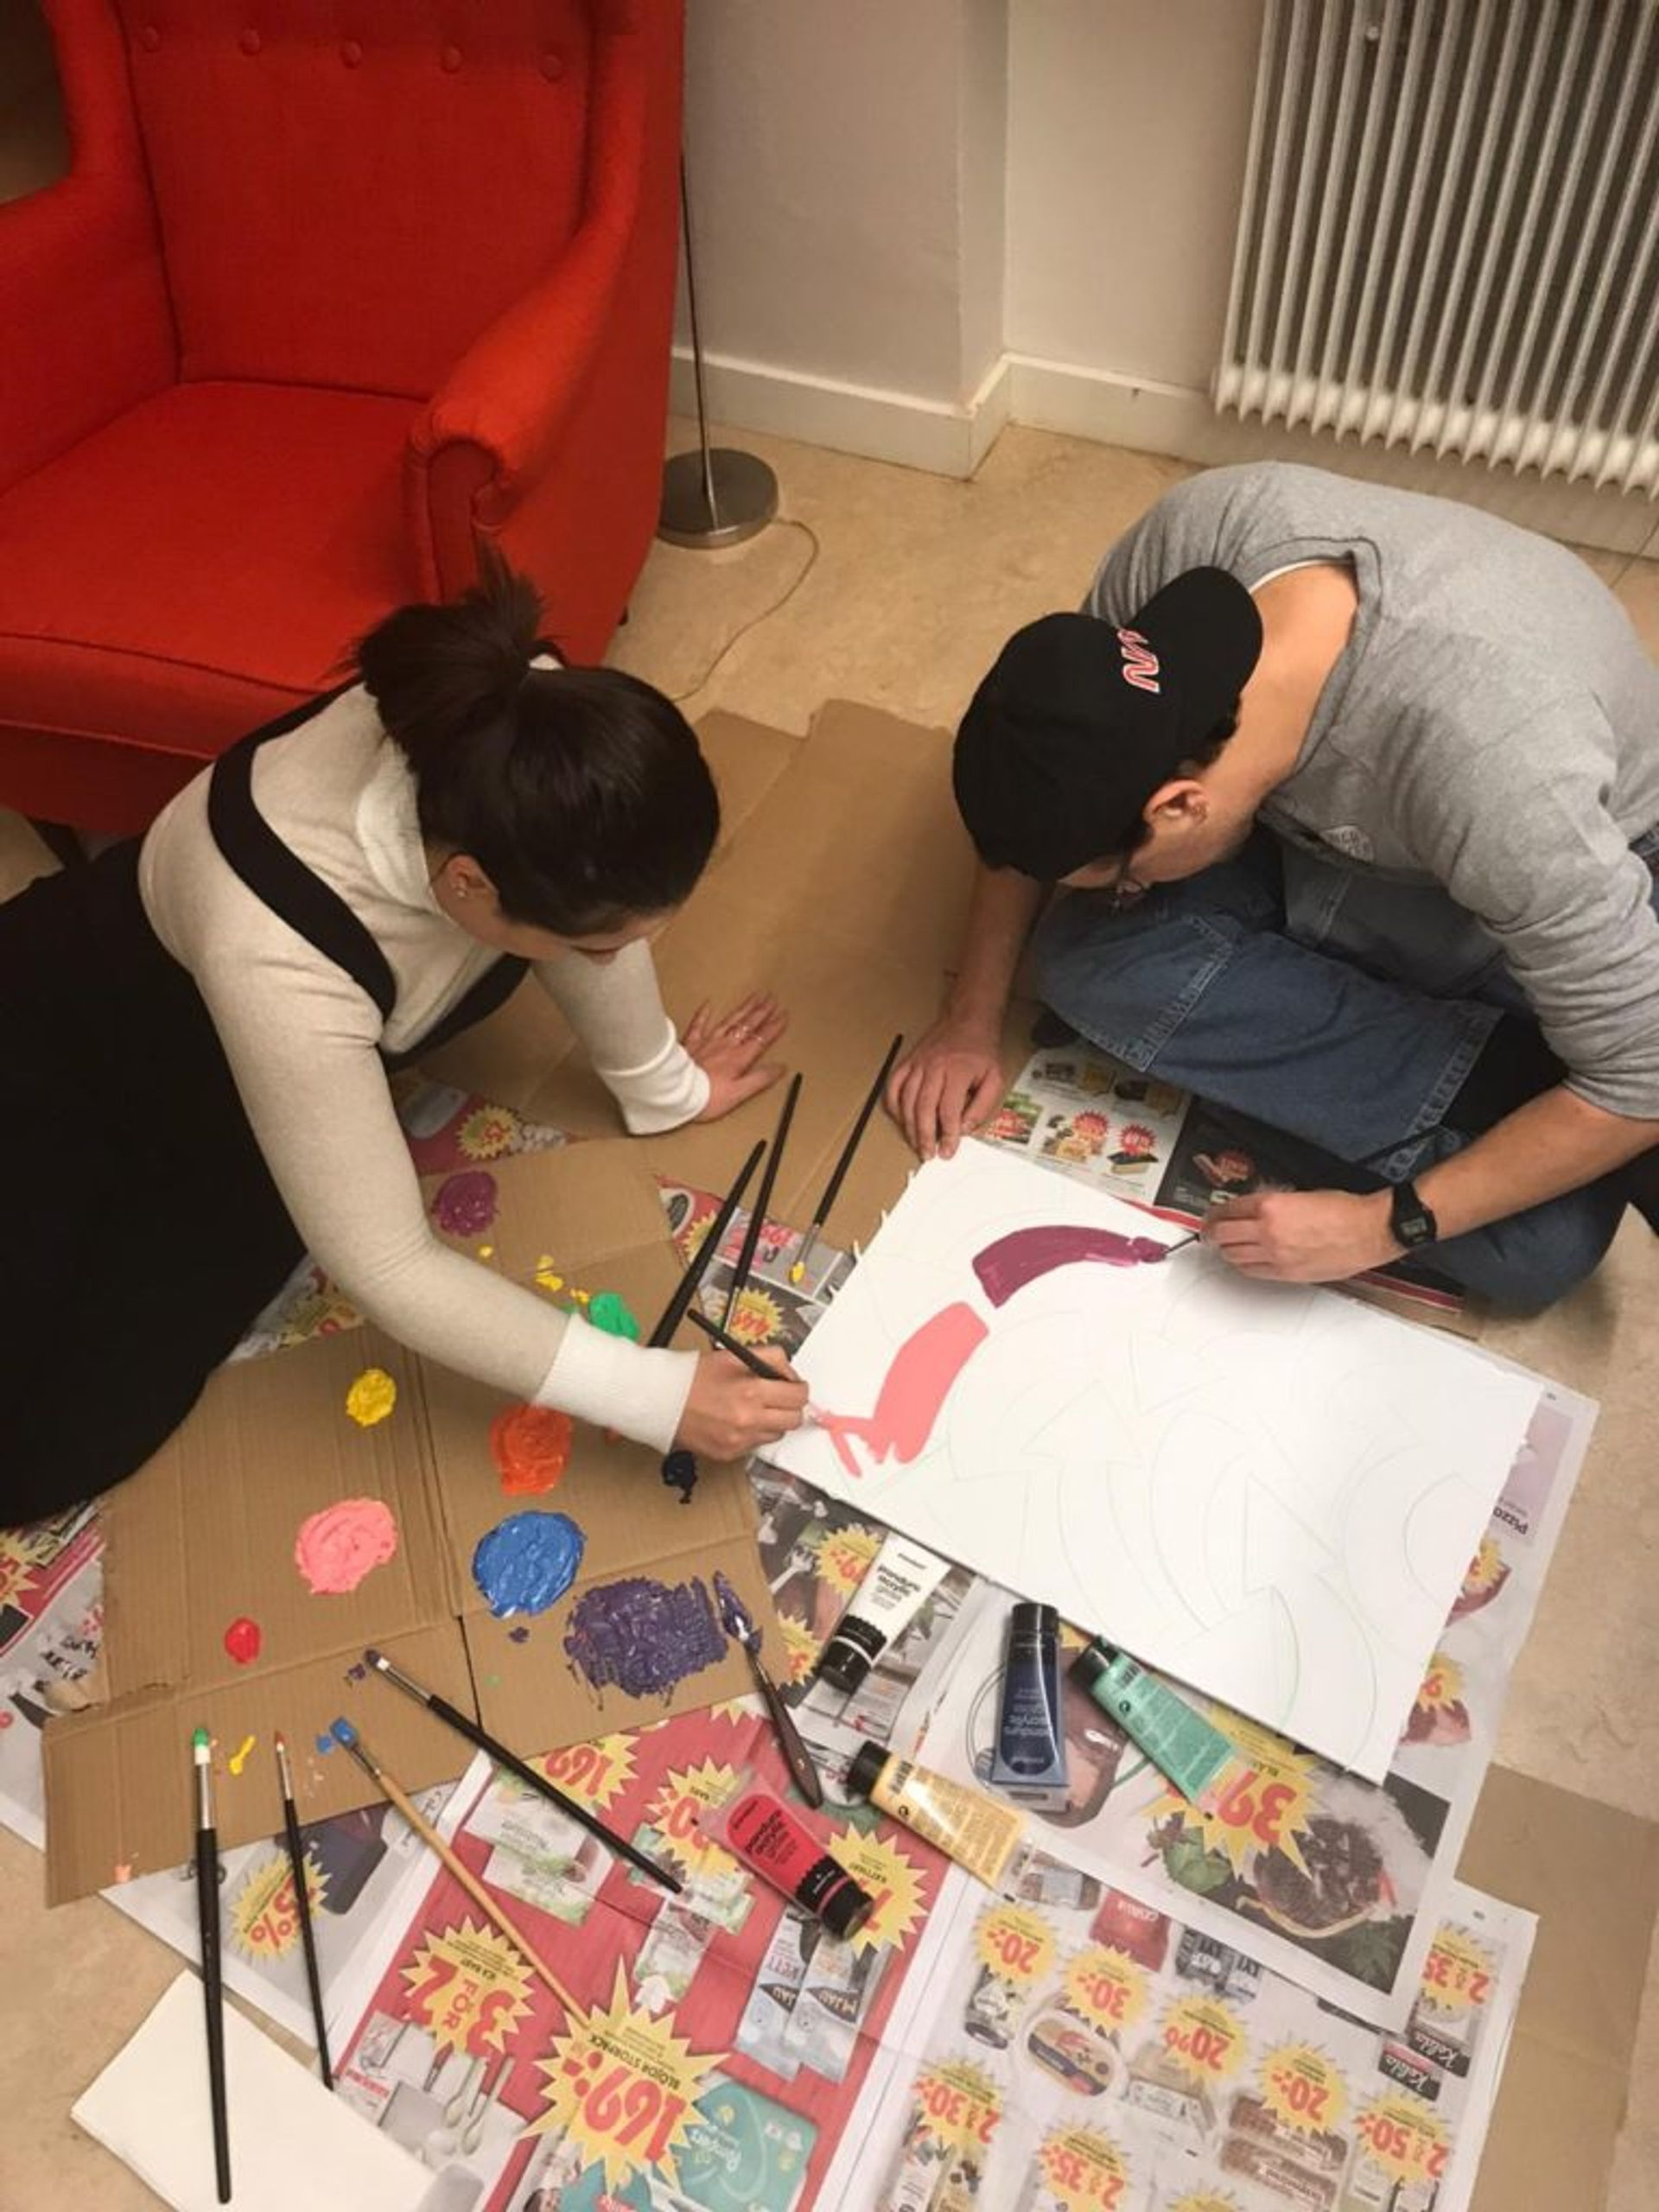 Two students sitting on the floor painting on a white piece of paper.